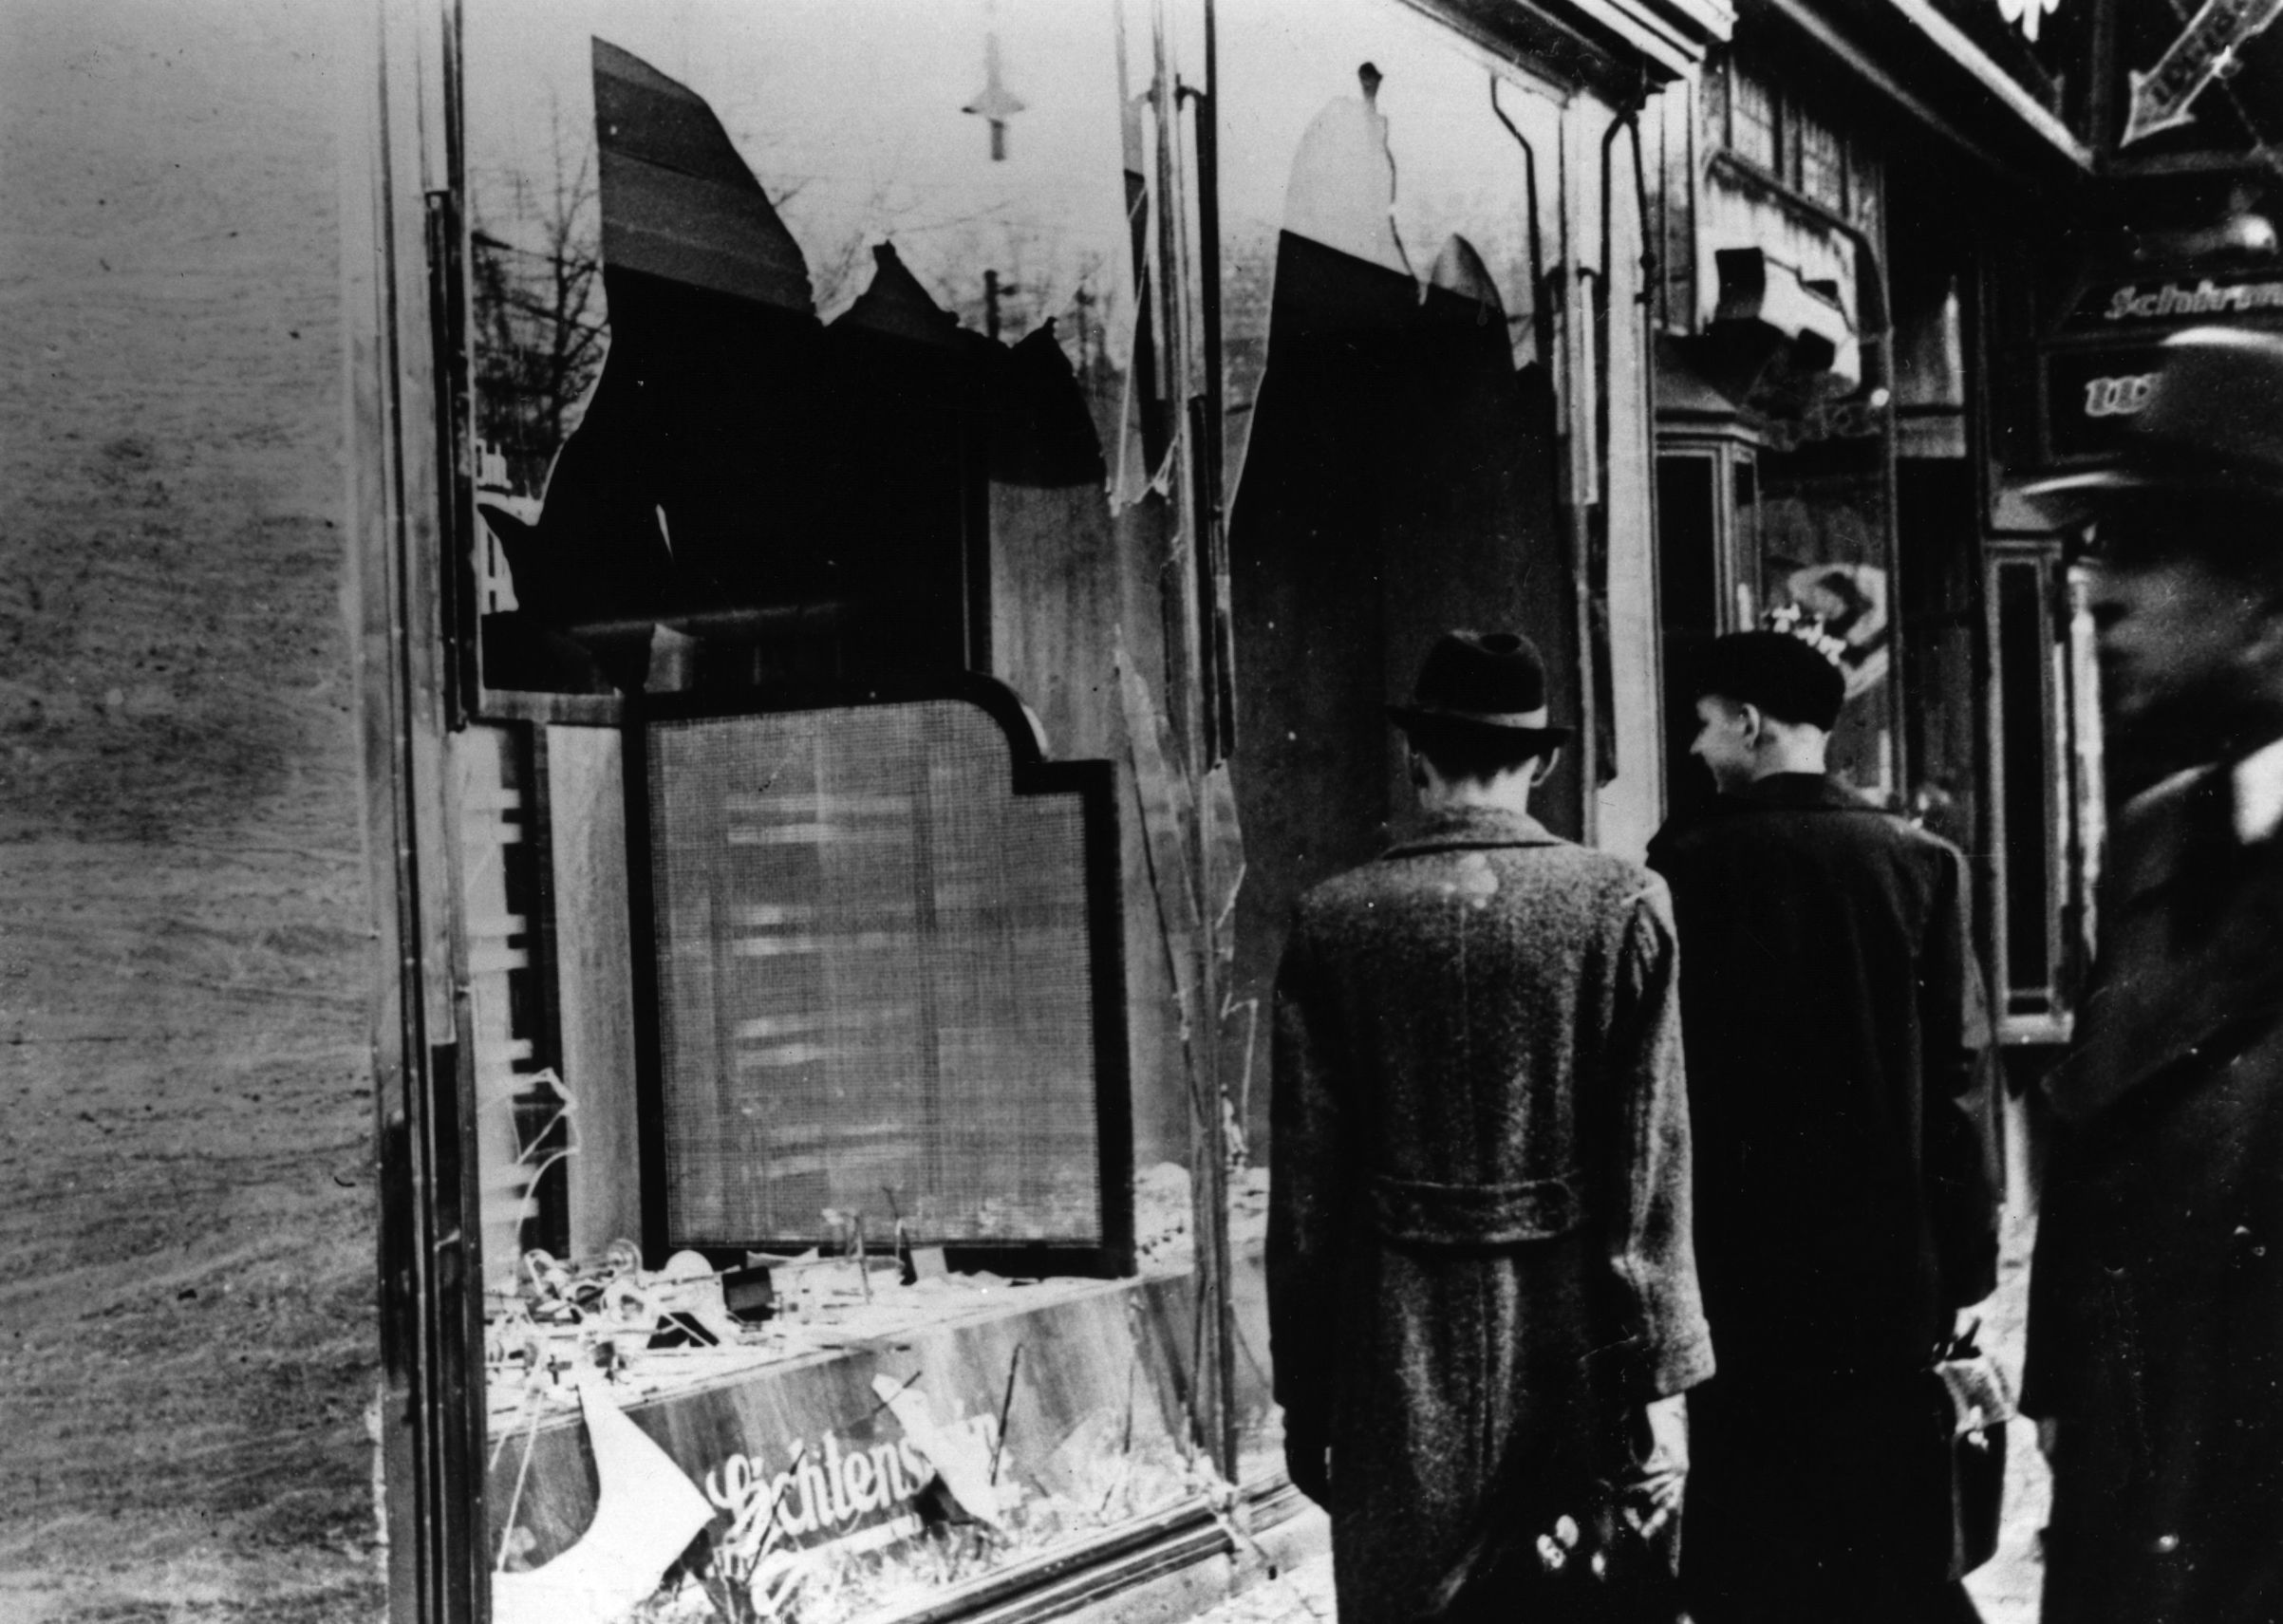 Nov. 10, 1938:  Three onlookers at a smashed Jewish shop window in Berlin following riots of the night of 9th November.